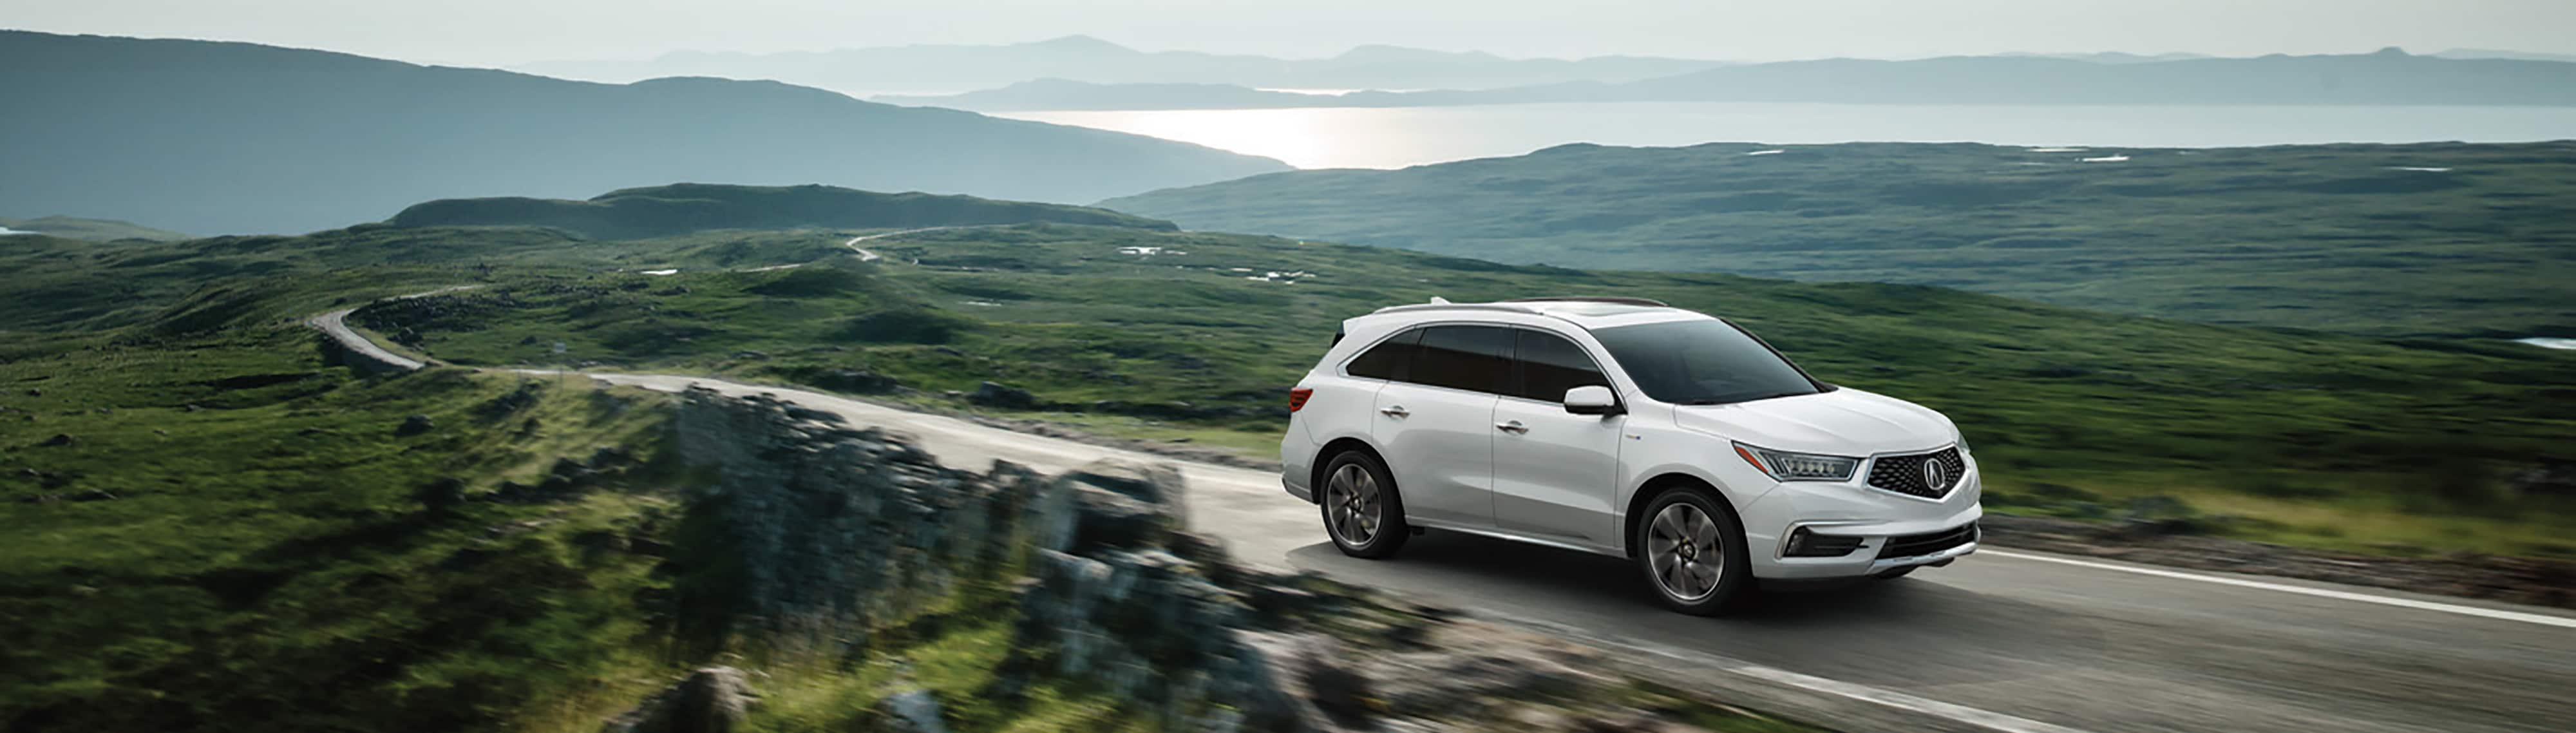 Acura Of Gainesville >> New Acura Mdx For Sale Gainesville The Villages Leesburg Area